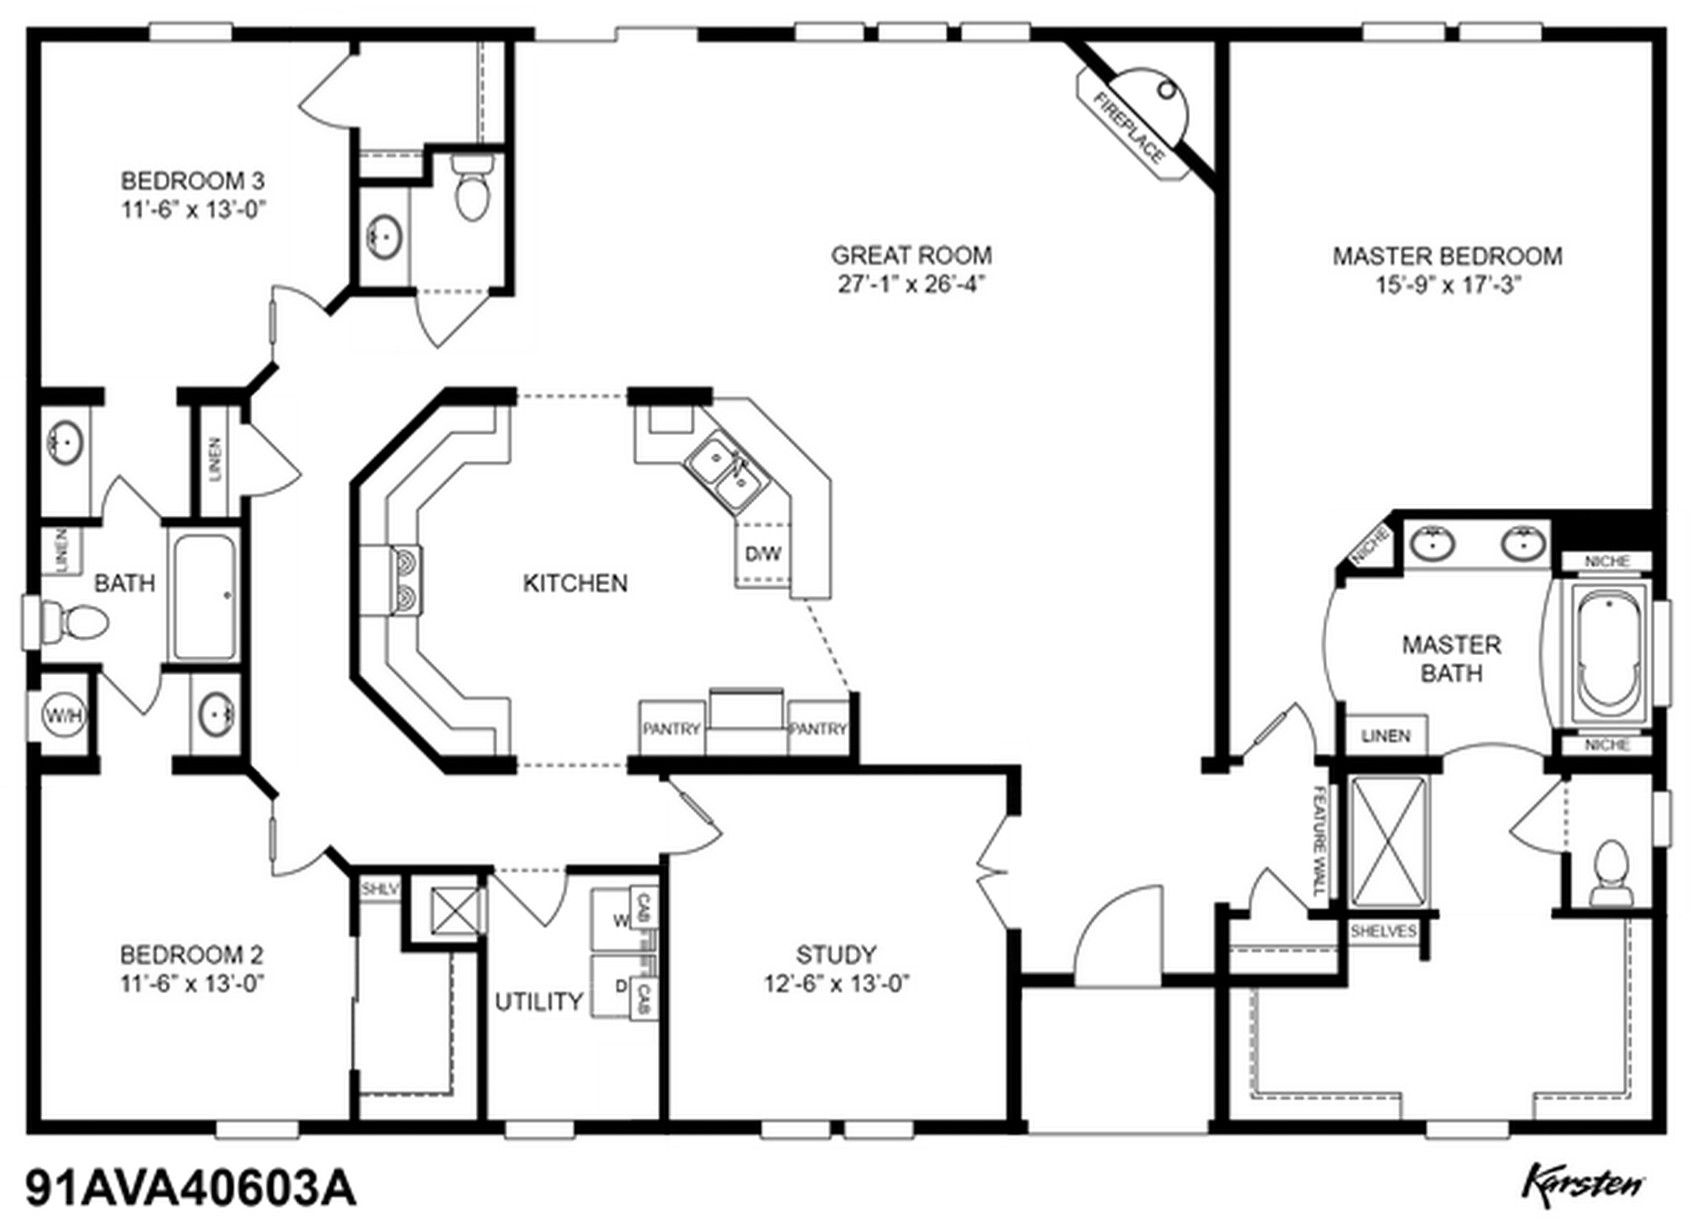 Clayton Homes AVAA With ALL The Options For My Home - Clayton modular homes floor plans